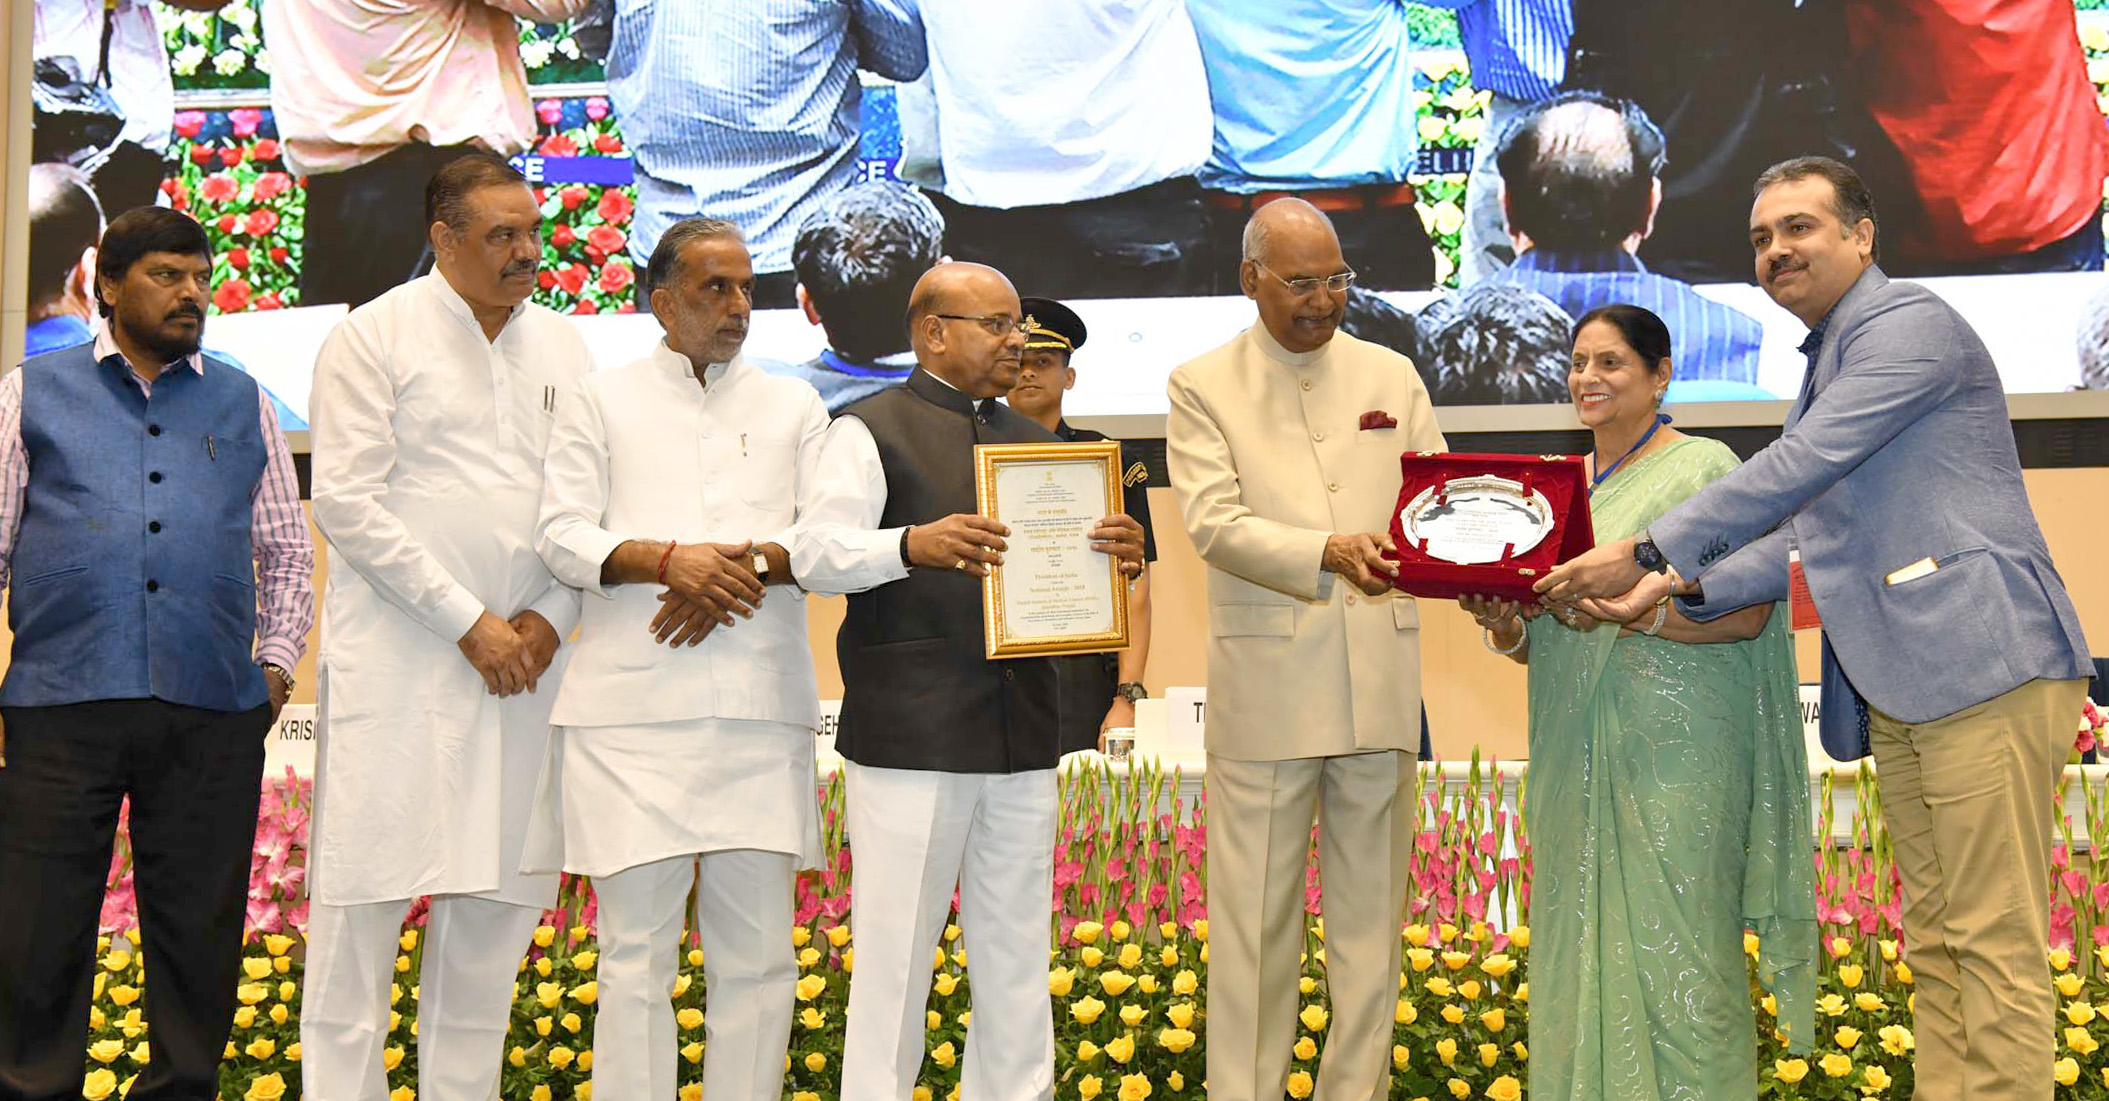 President presents National Awards for Outstanding Services in the field